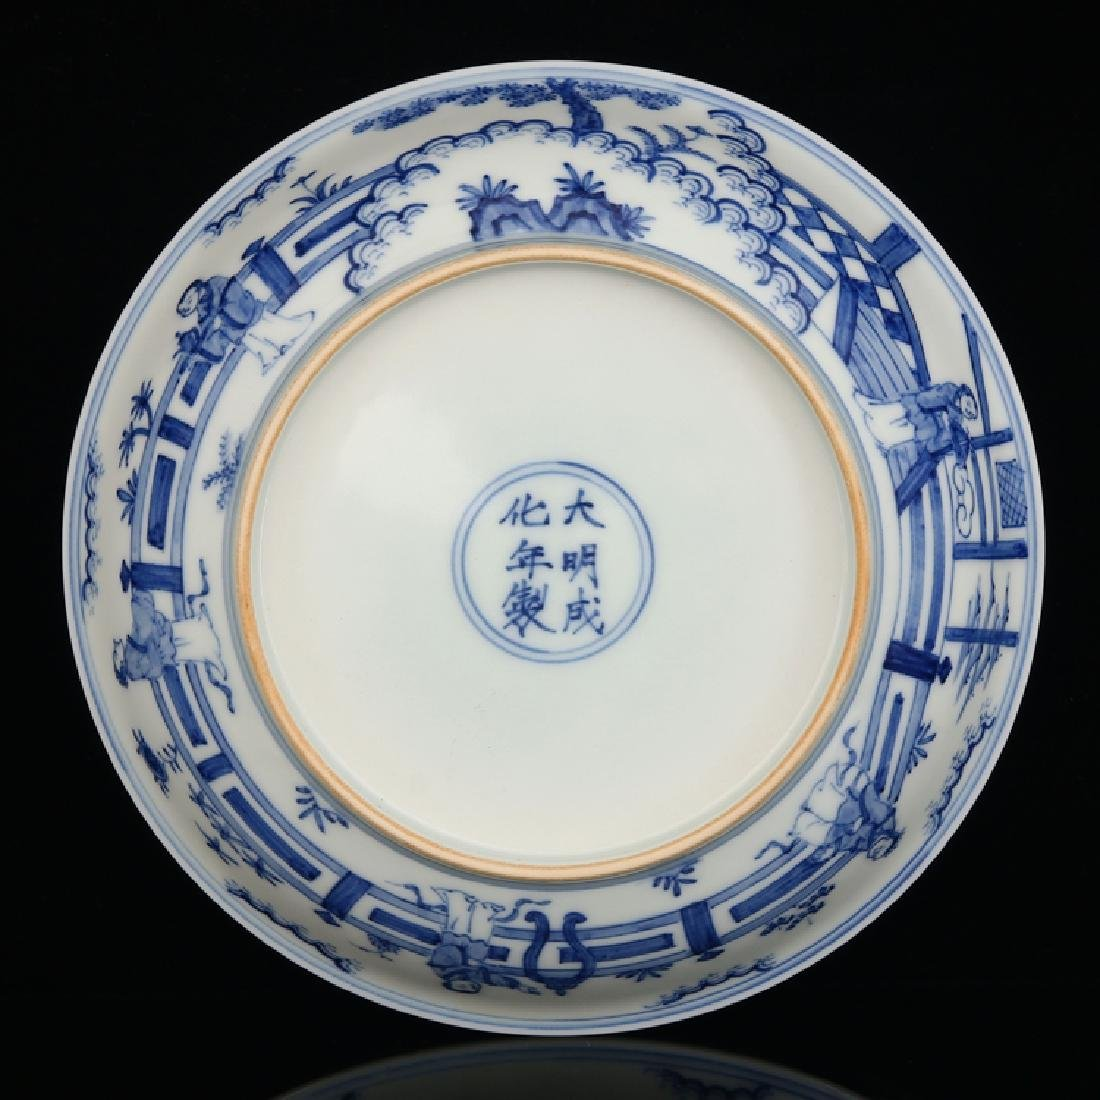 Chinese Blue And White Porcelain Plate - 2